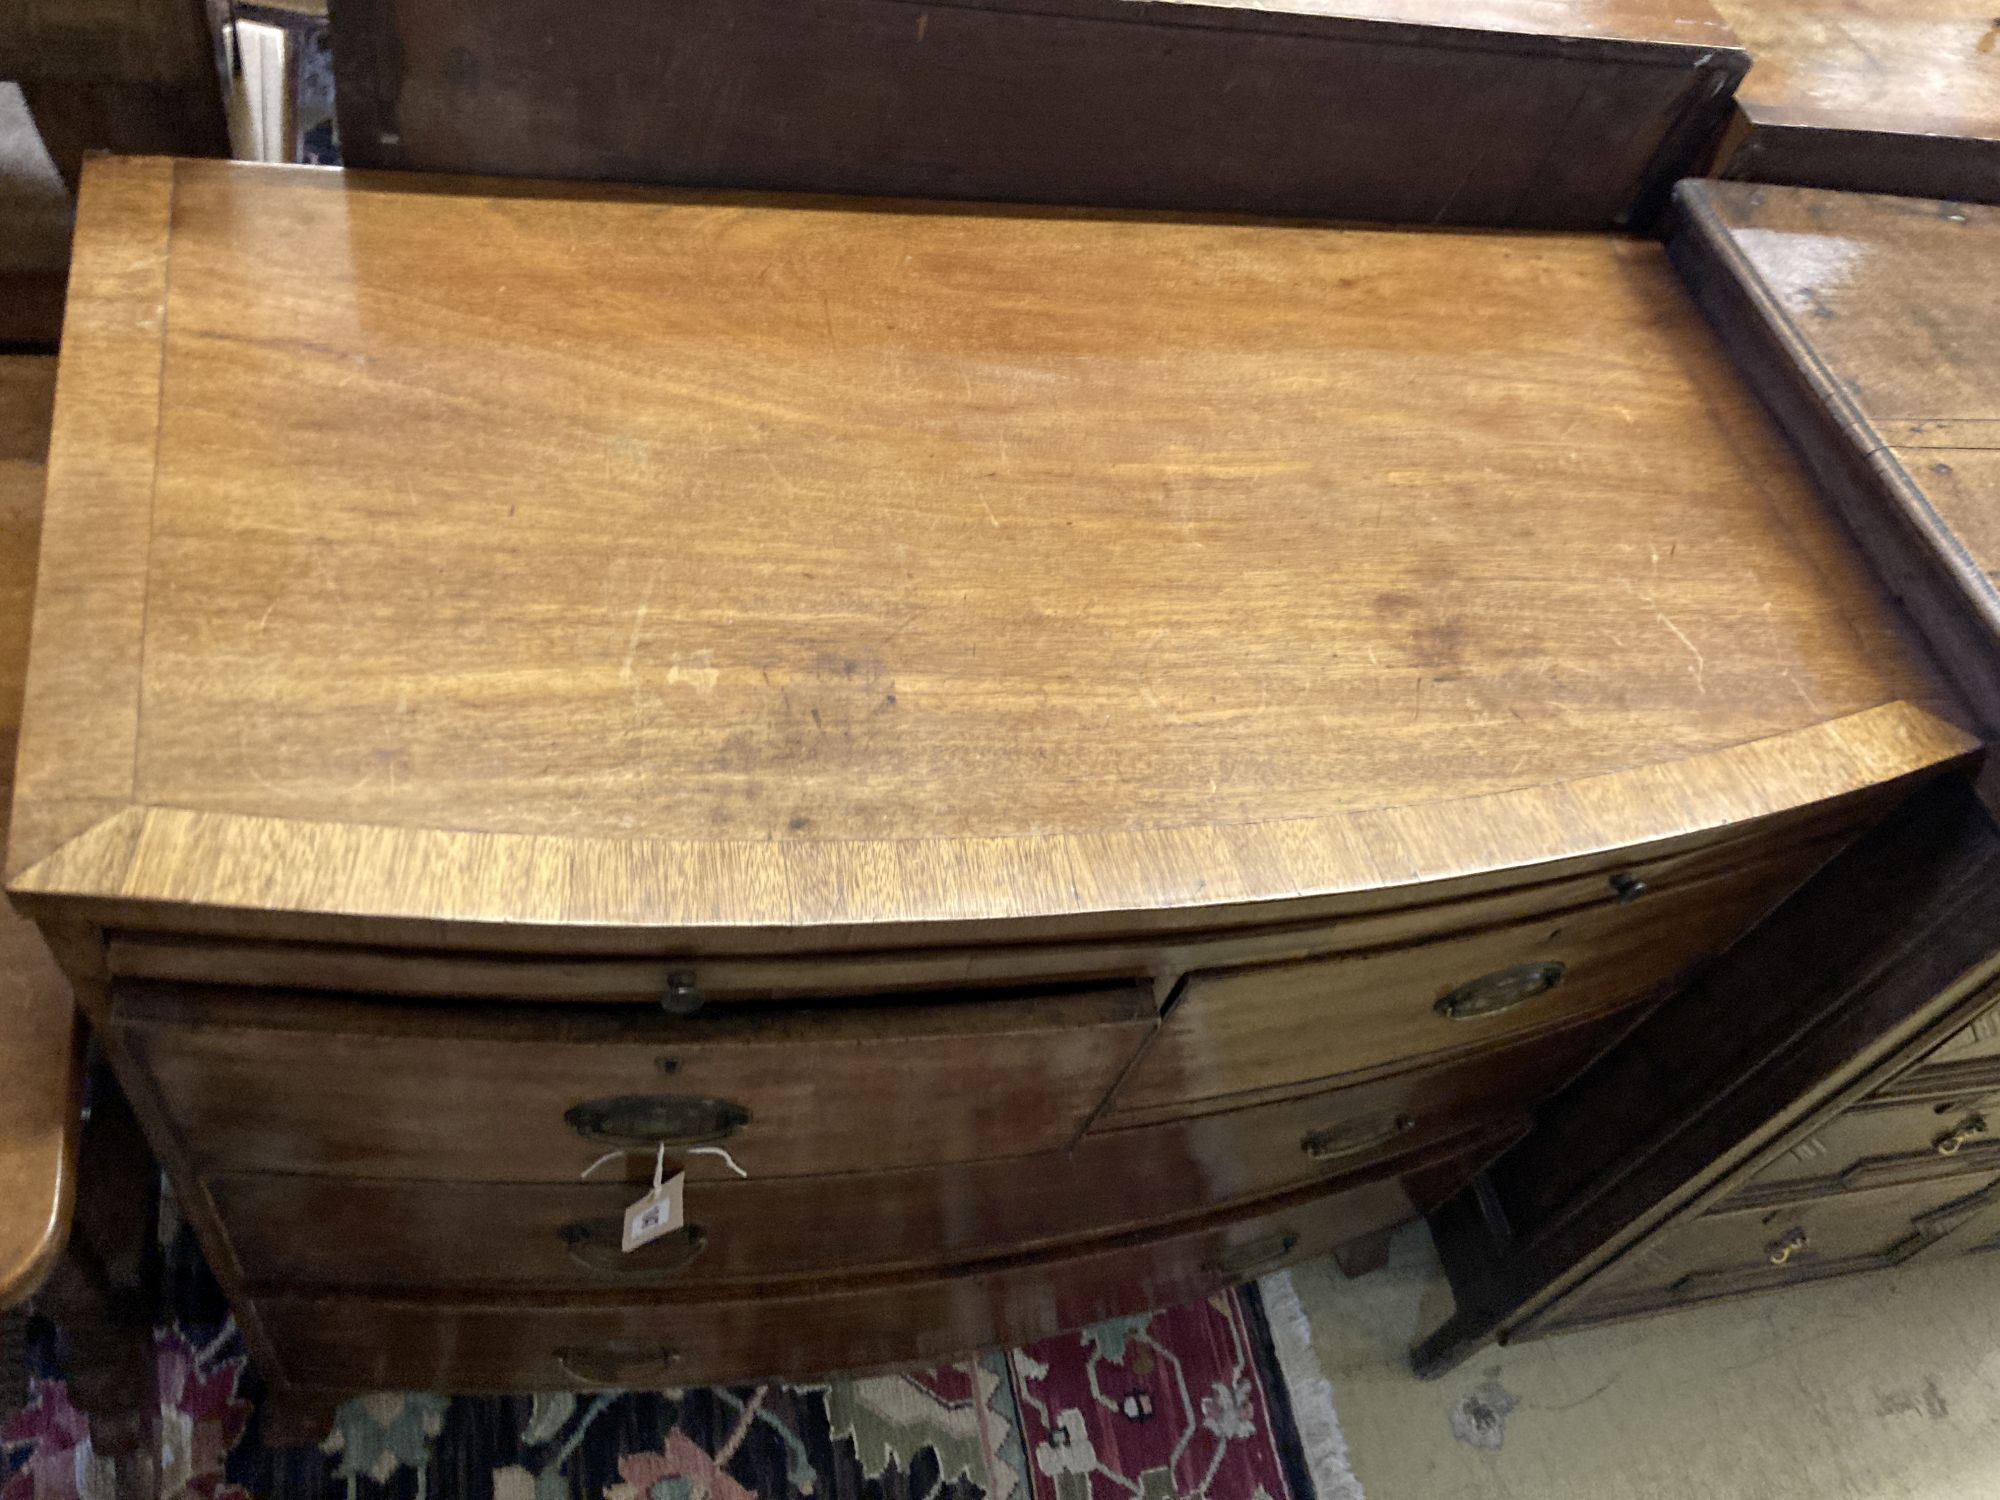 A Regency mahogany bowfront chest, fitted brushing slide, width 96cm, depth 49cm, height 86cm - Image 2 of 4